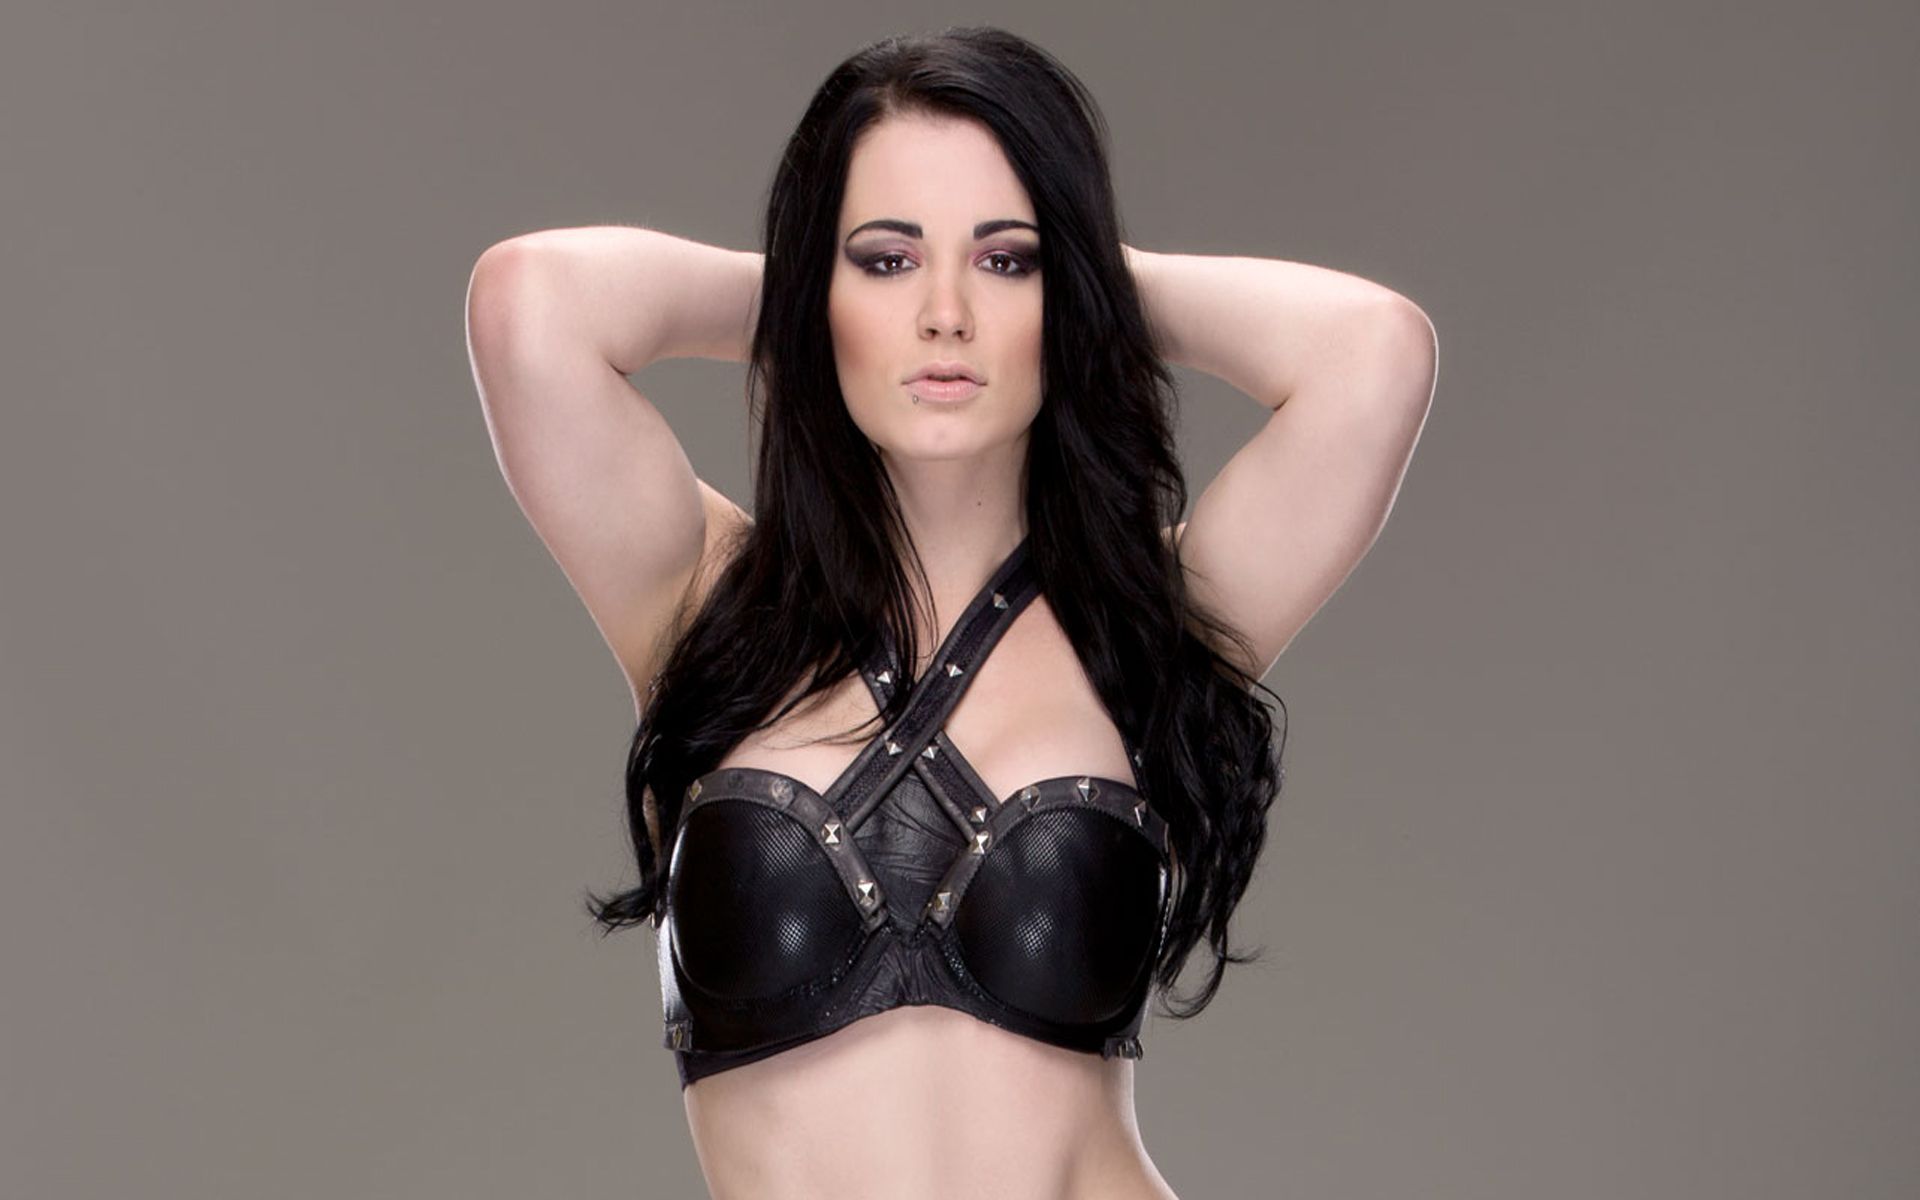 Women images wwe porn